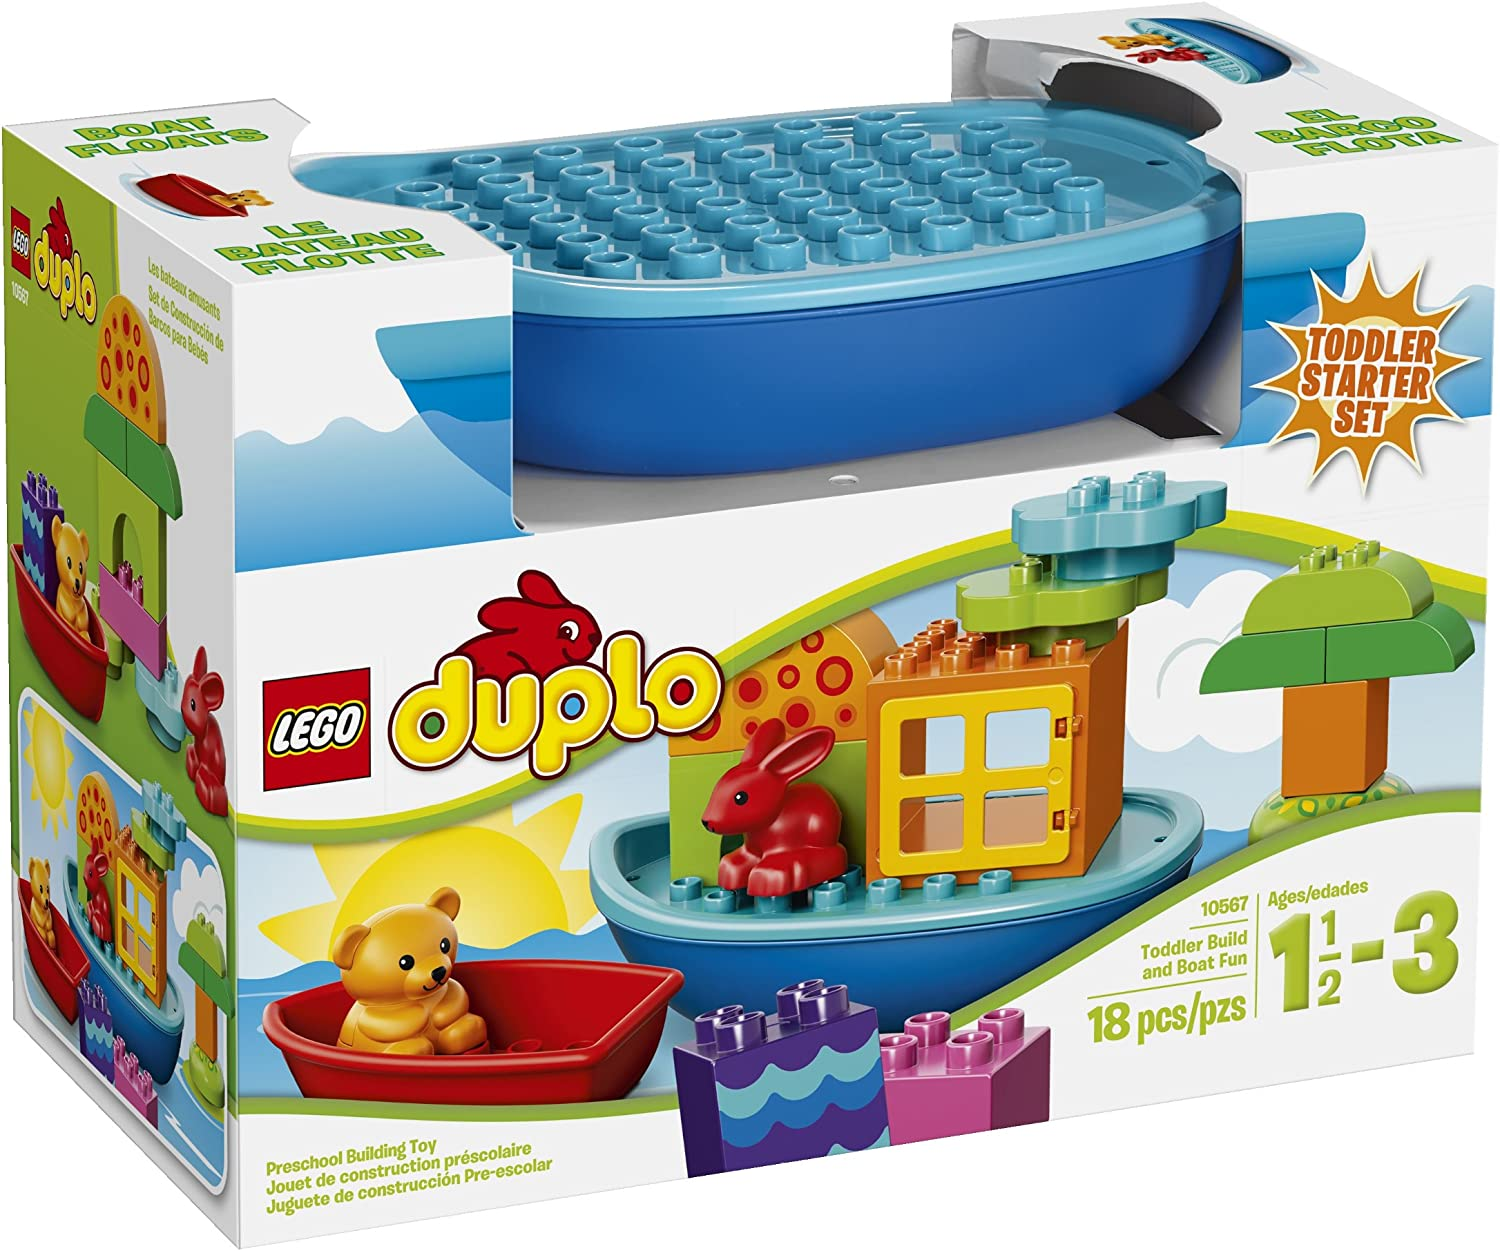 LEGO DUPLO Toddler Build and Boat Fun Building Set 10567(Discontinued by manufacturer)